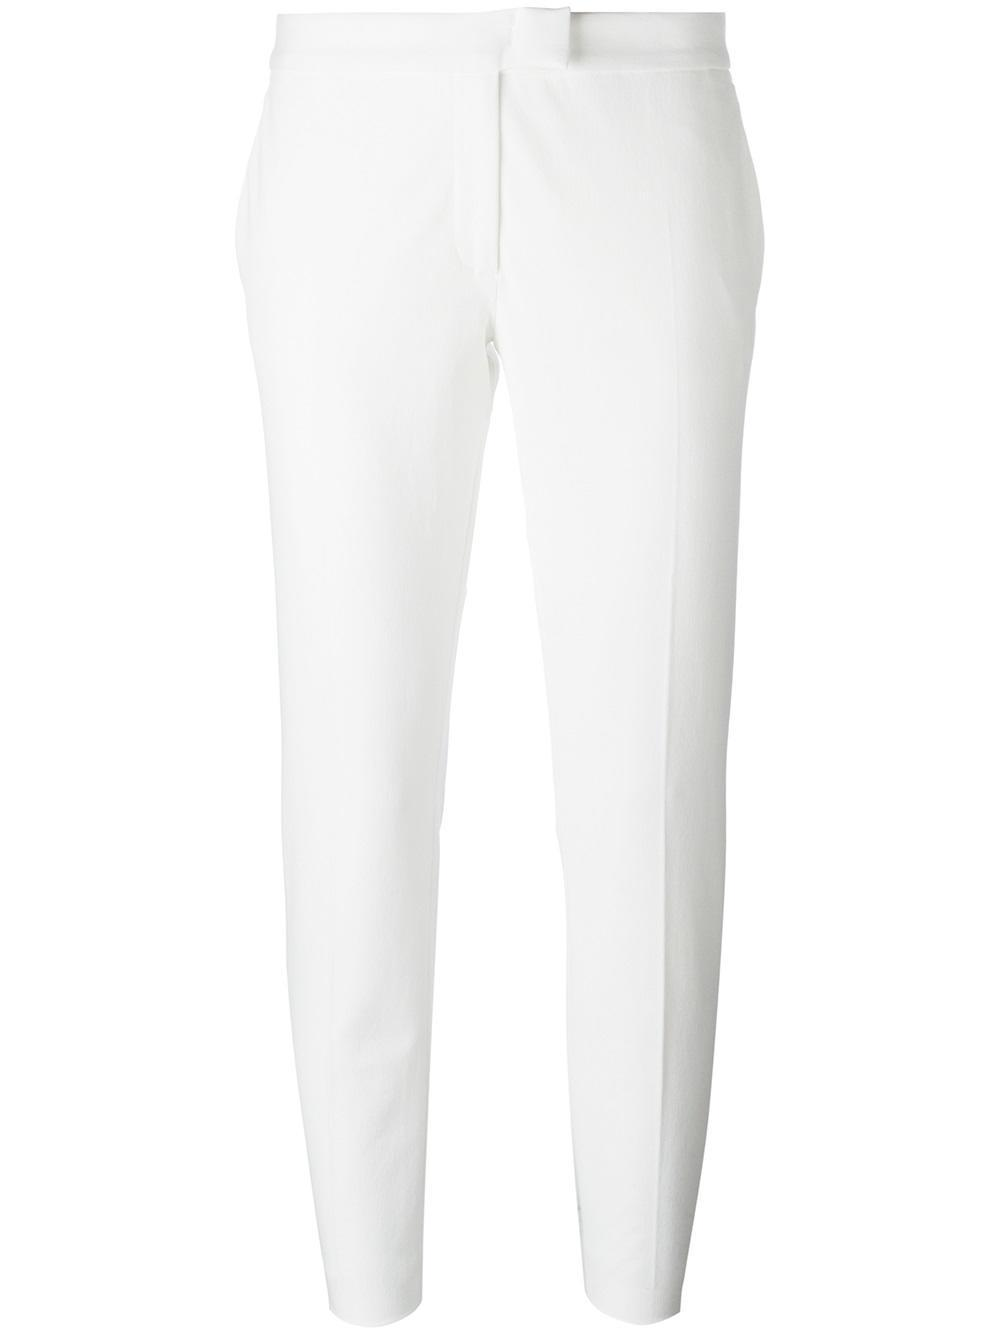 Shop for Women's Trousers & Leggings from our Women range at John Lewis & Partners. Free Delivery on orders over £ Update your working wardrobe with our women's tailored trousers and leggings, from brands such as Betty Barclay, Hobbs and Jaeger. Prefer a particular silhouette? White Stuff. Winser London.